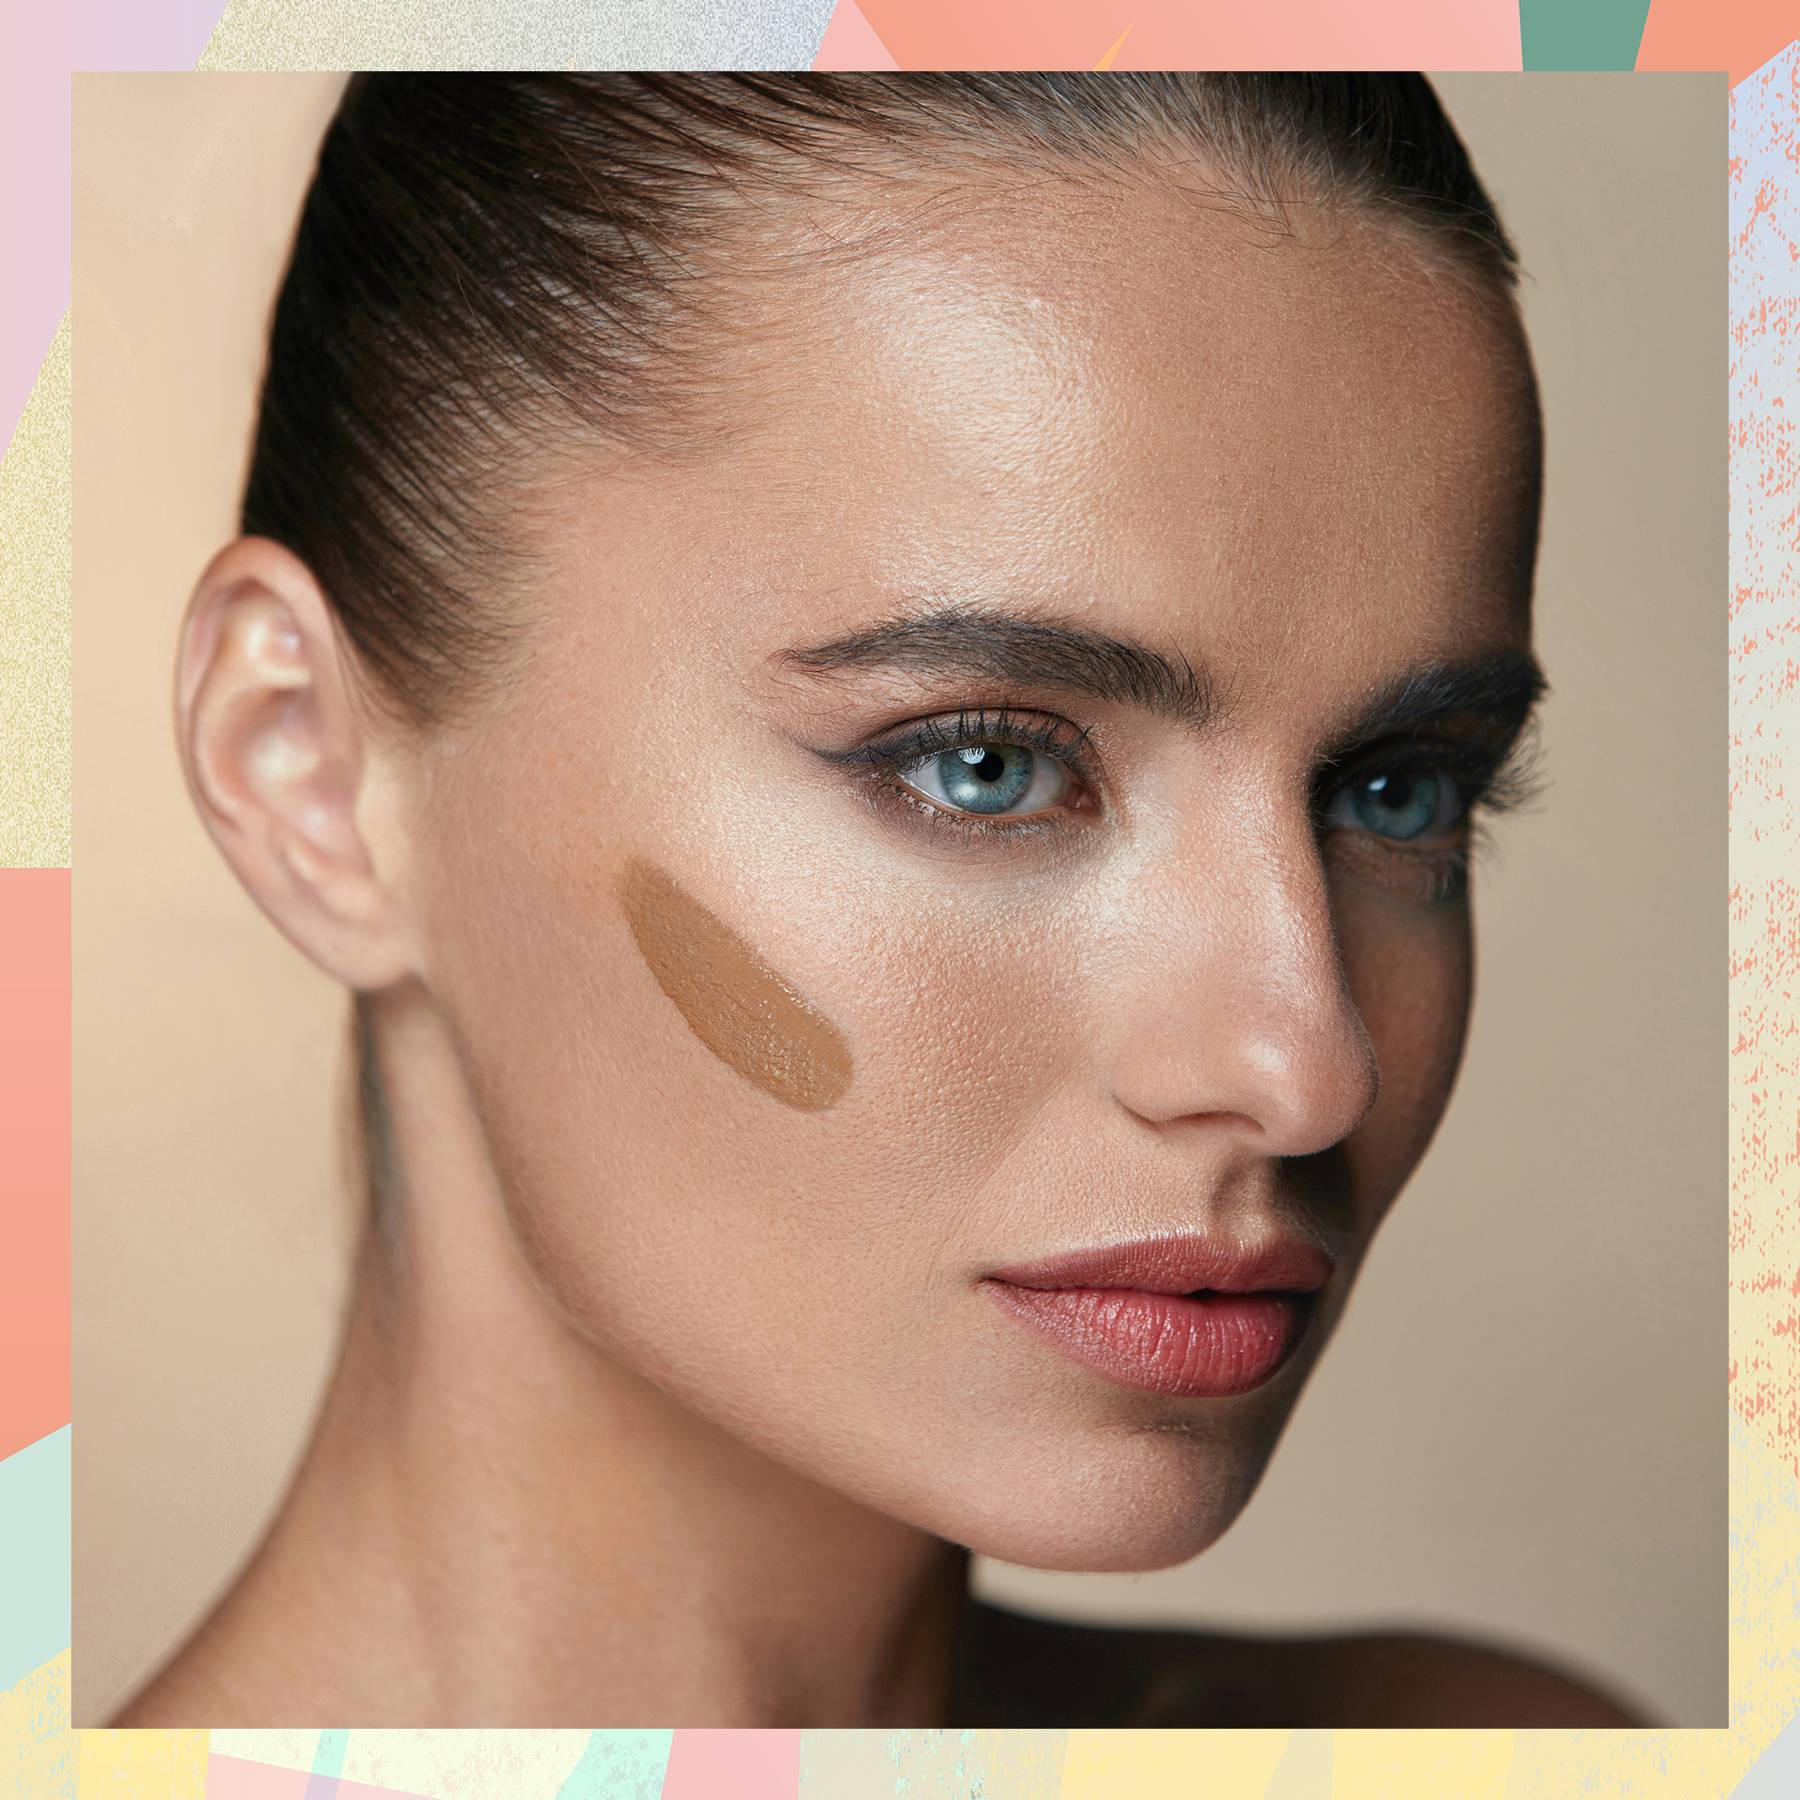 The Latest Trend in Contouring is ActuallyGenius